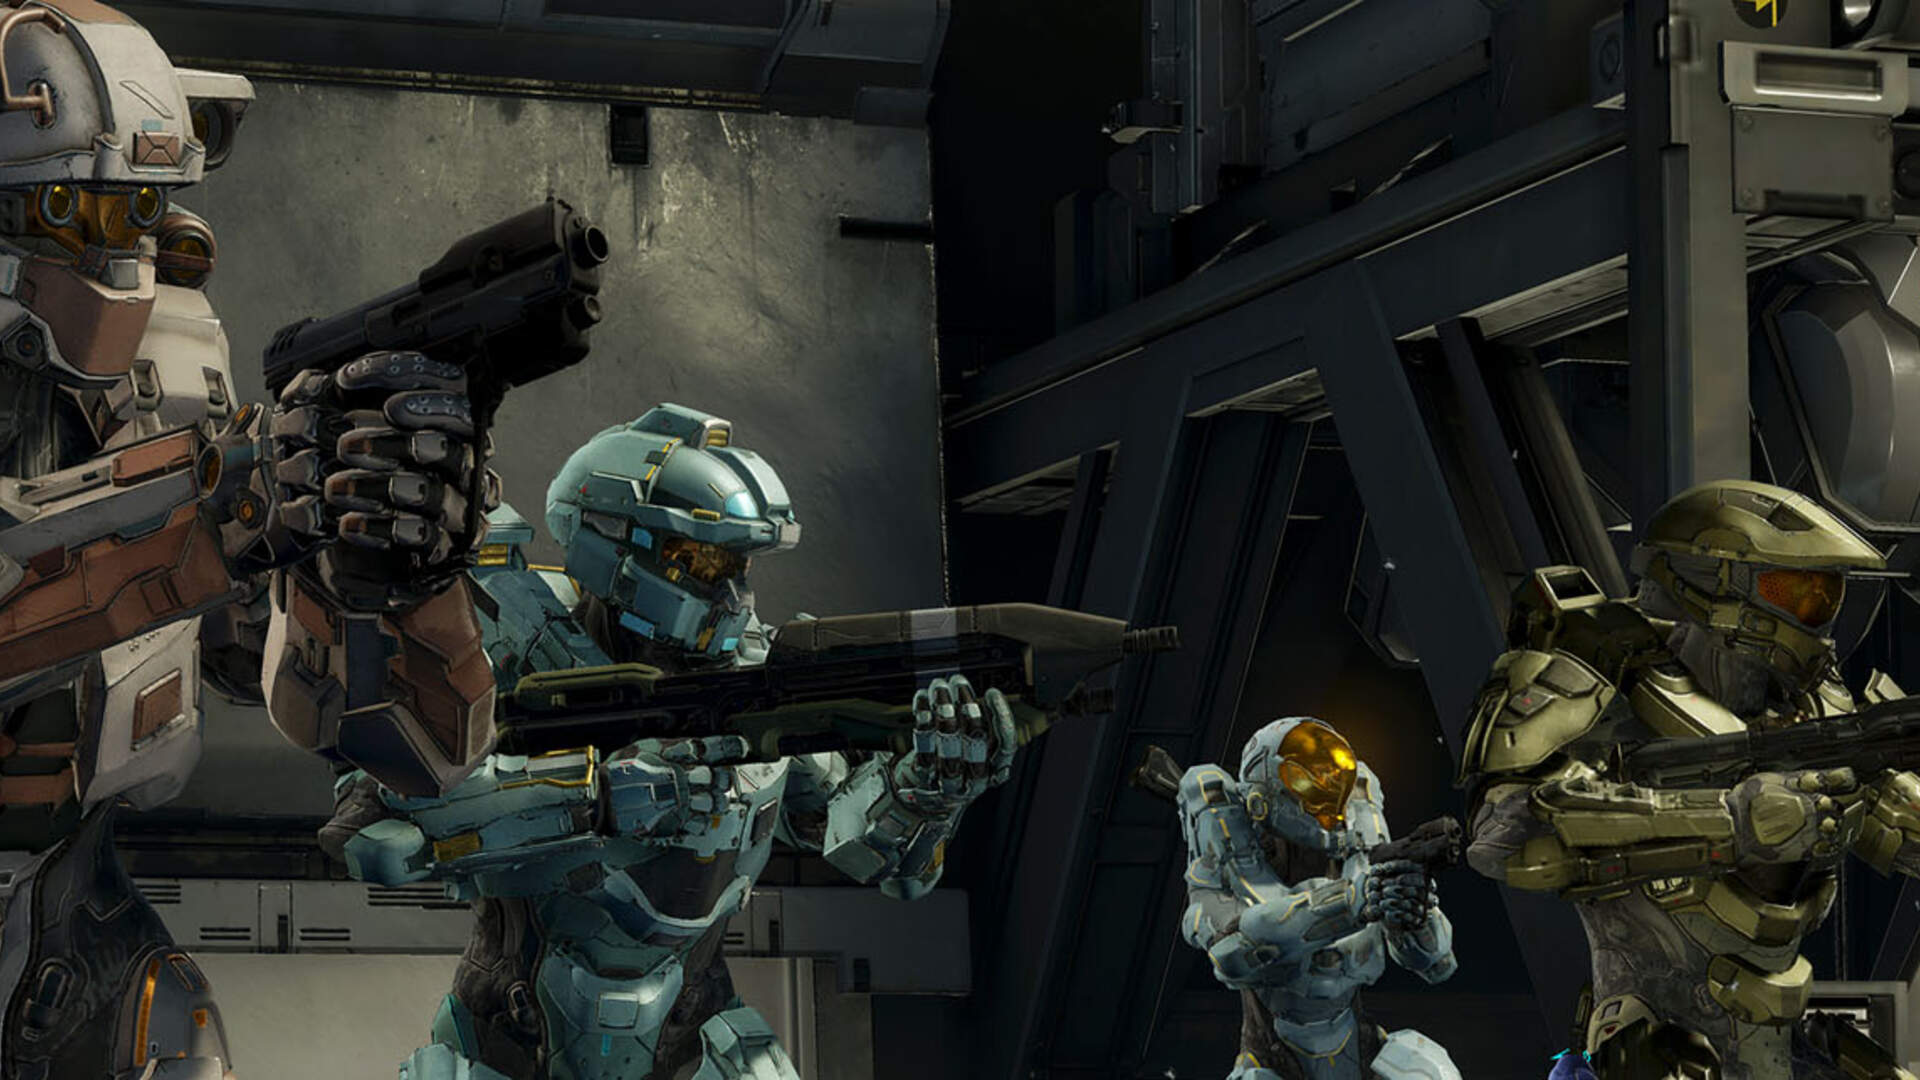 Halo 5 : Guardians Campaign Preview: Silky Smooth